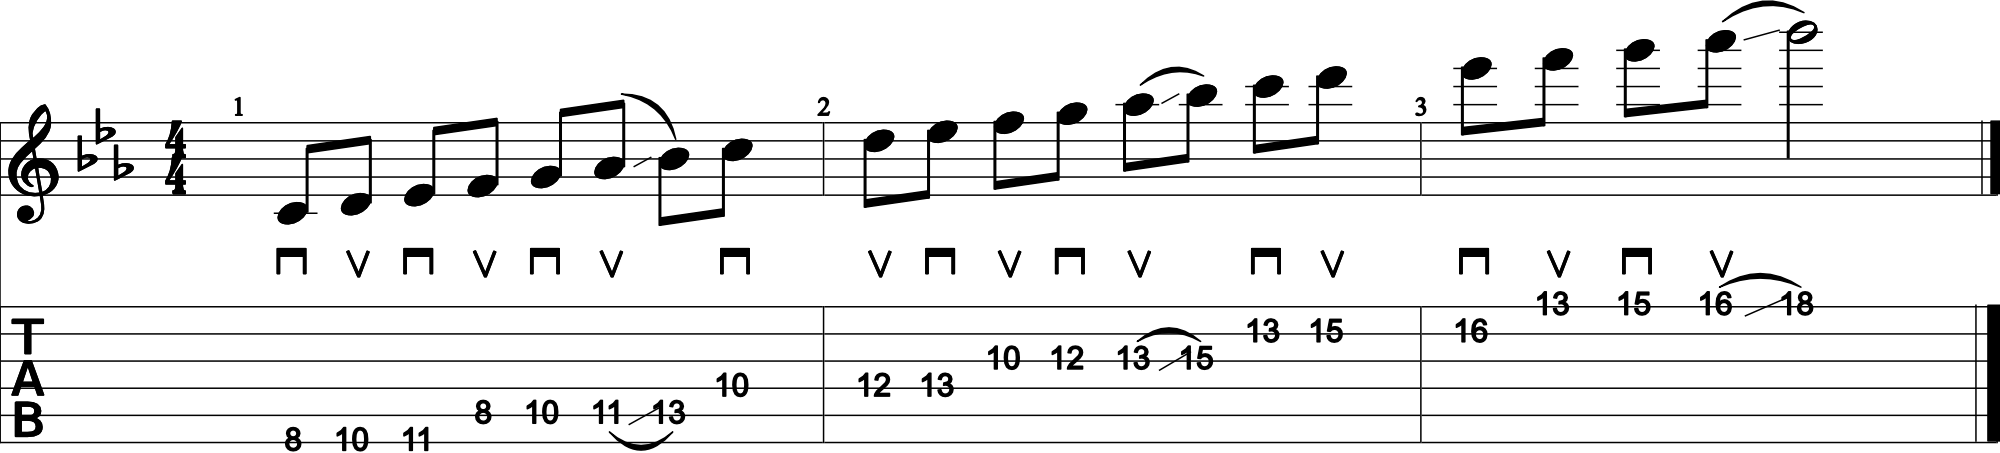 Full C Minor Scale Tab